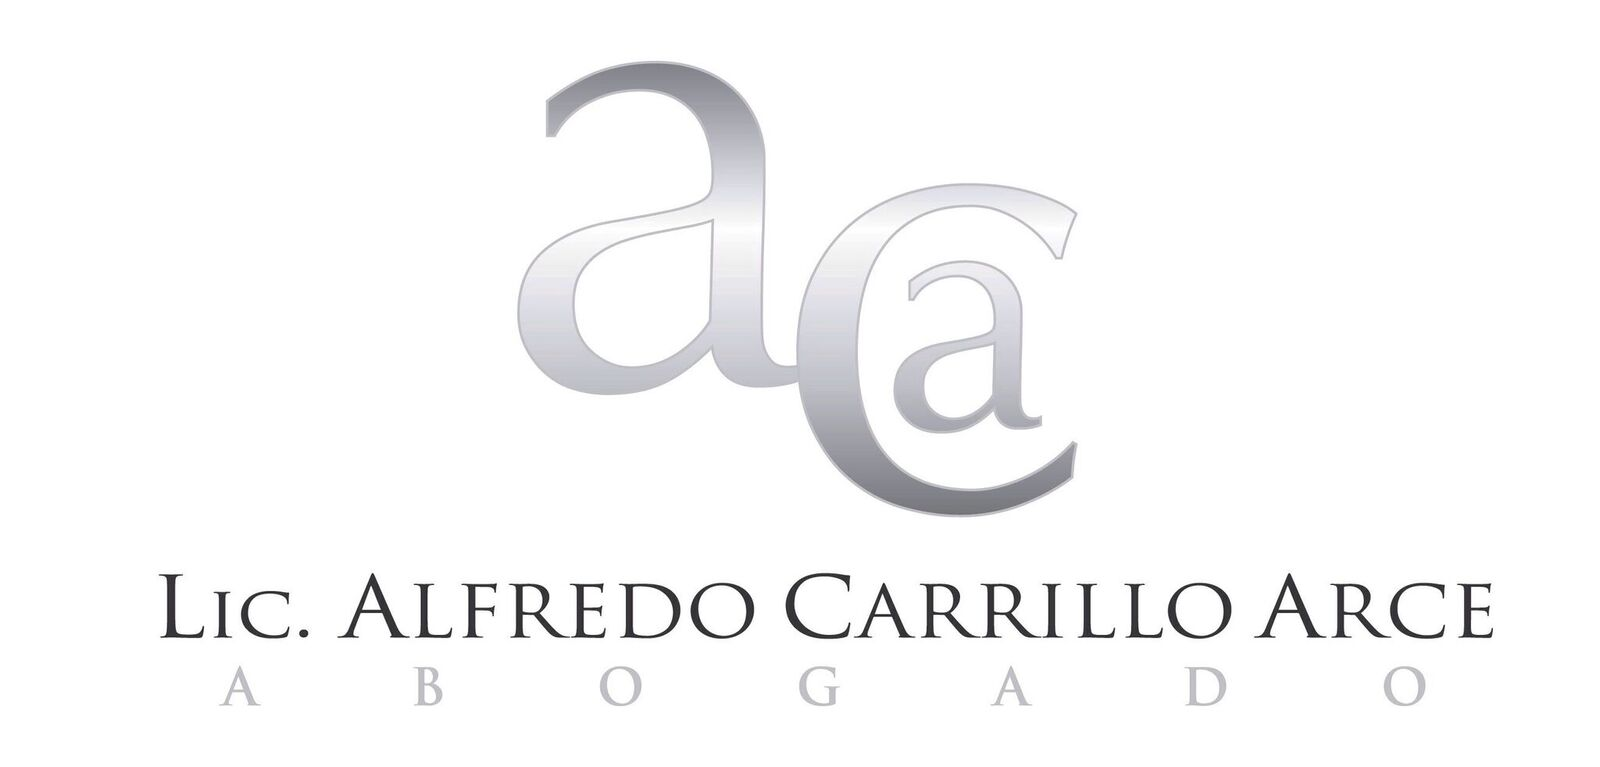 Lic. Alfredo Carrillo